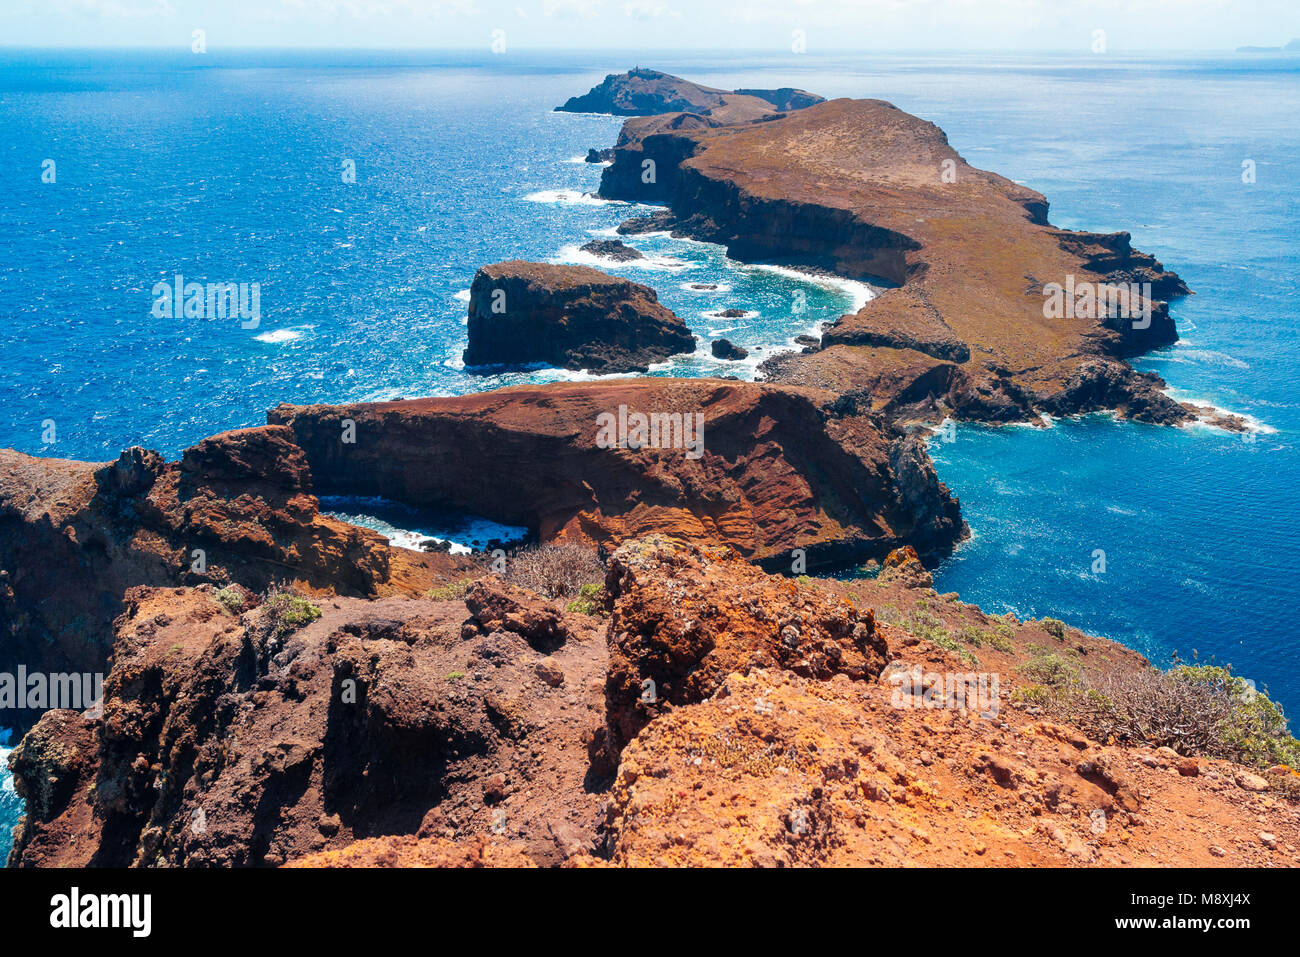 The promontory of Ponta de Sao Lourenco at the easternmost tip of Madeira - Stock Image